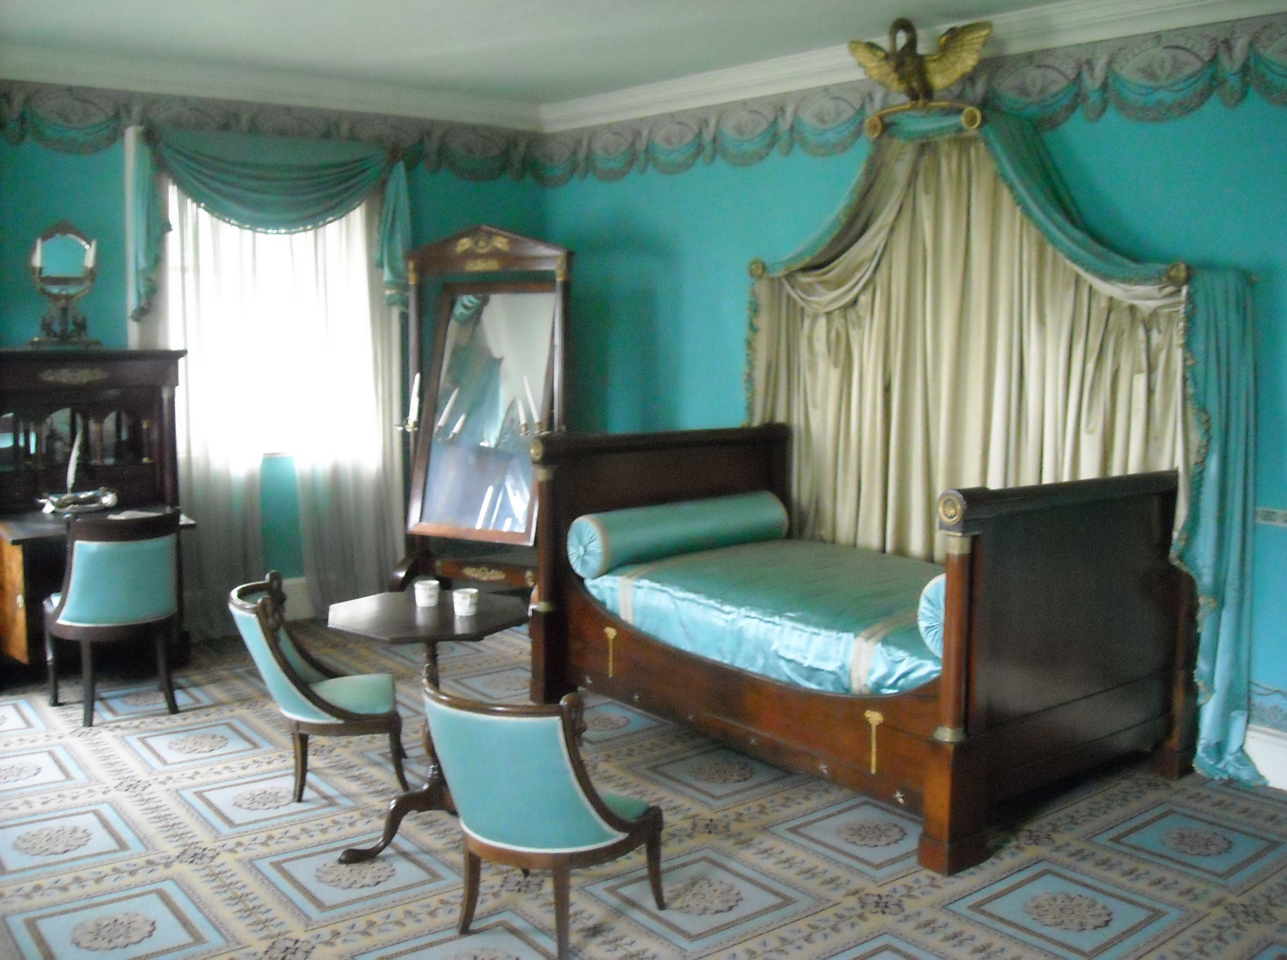 One of the inner rooms of the mansion which is still preserved up to date.